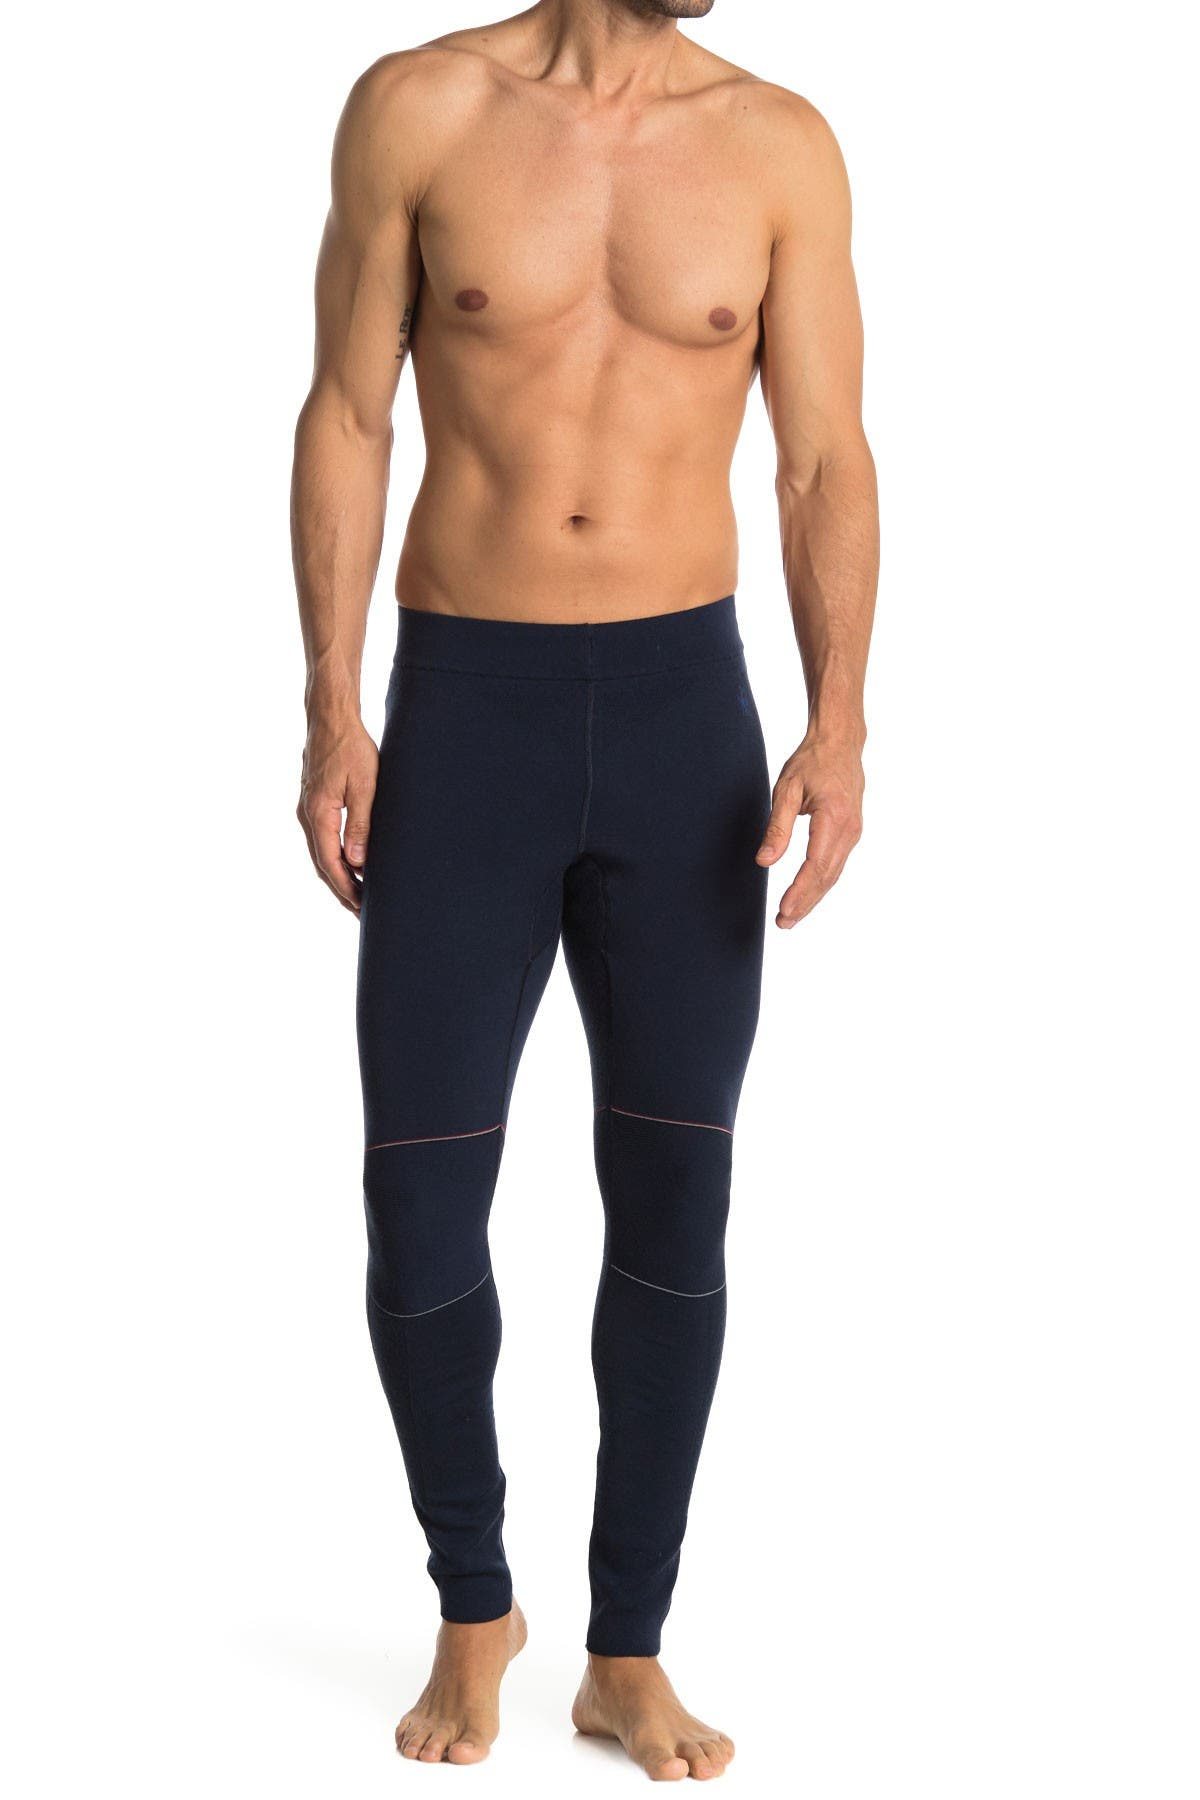 Image of SmartWool Active Fitted Leggings